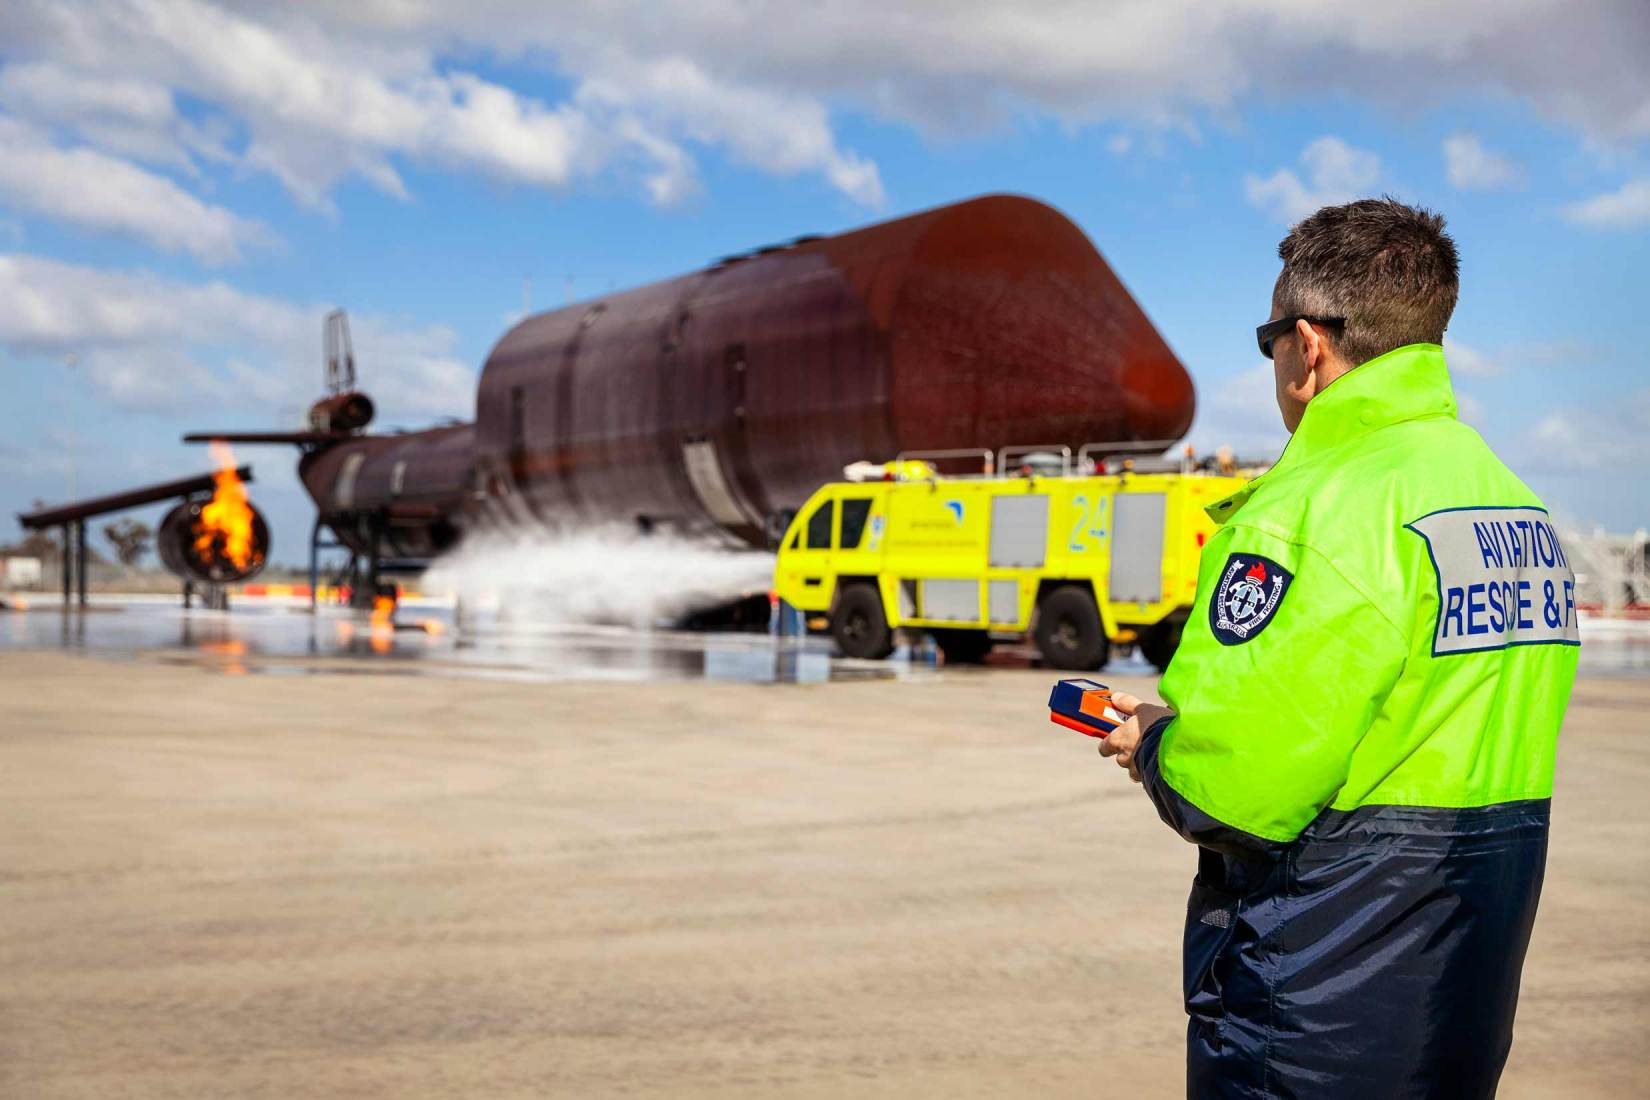 18106-4481-Image-Workshop-Melbourne-firefighter-fire-fighting-photography